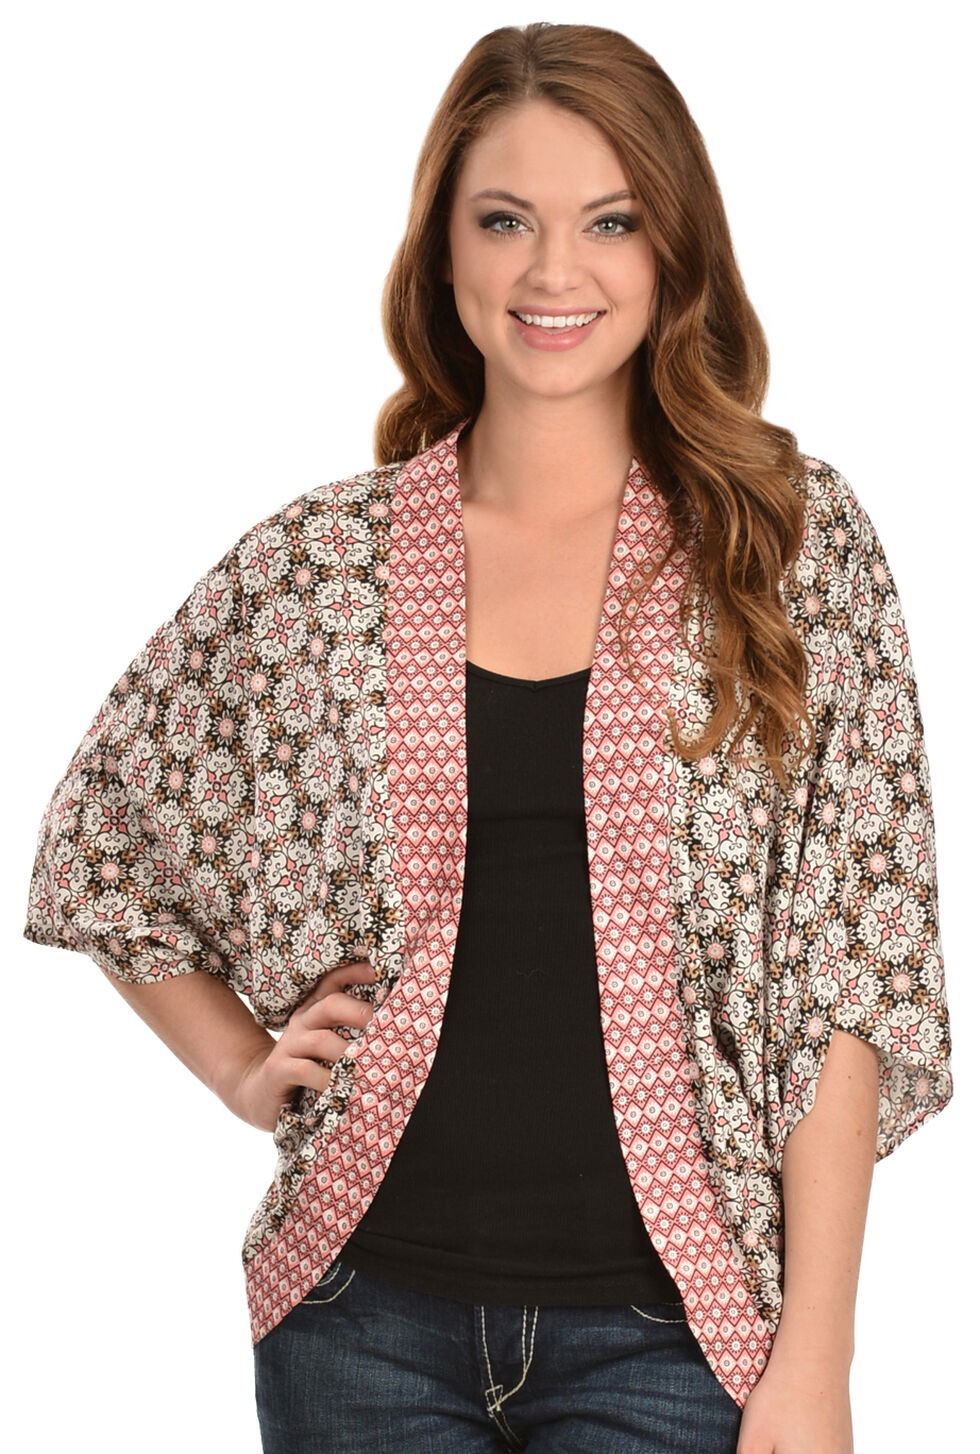 Red Ranch Women's Print Cocoon Top, Black, hi-res